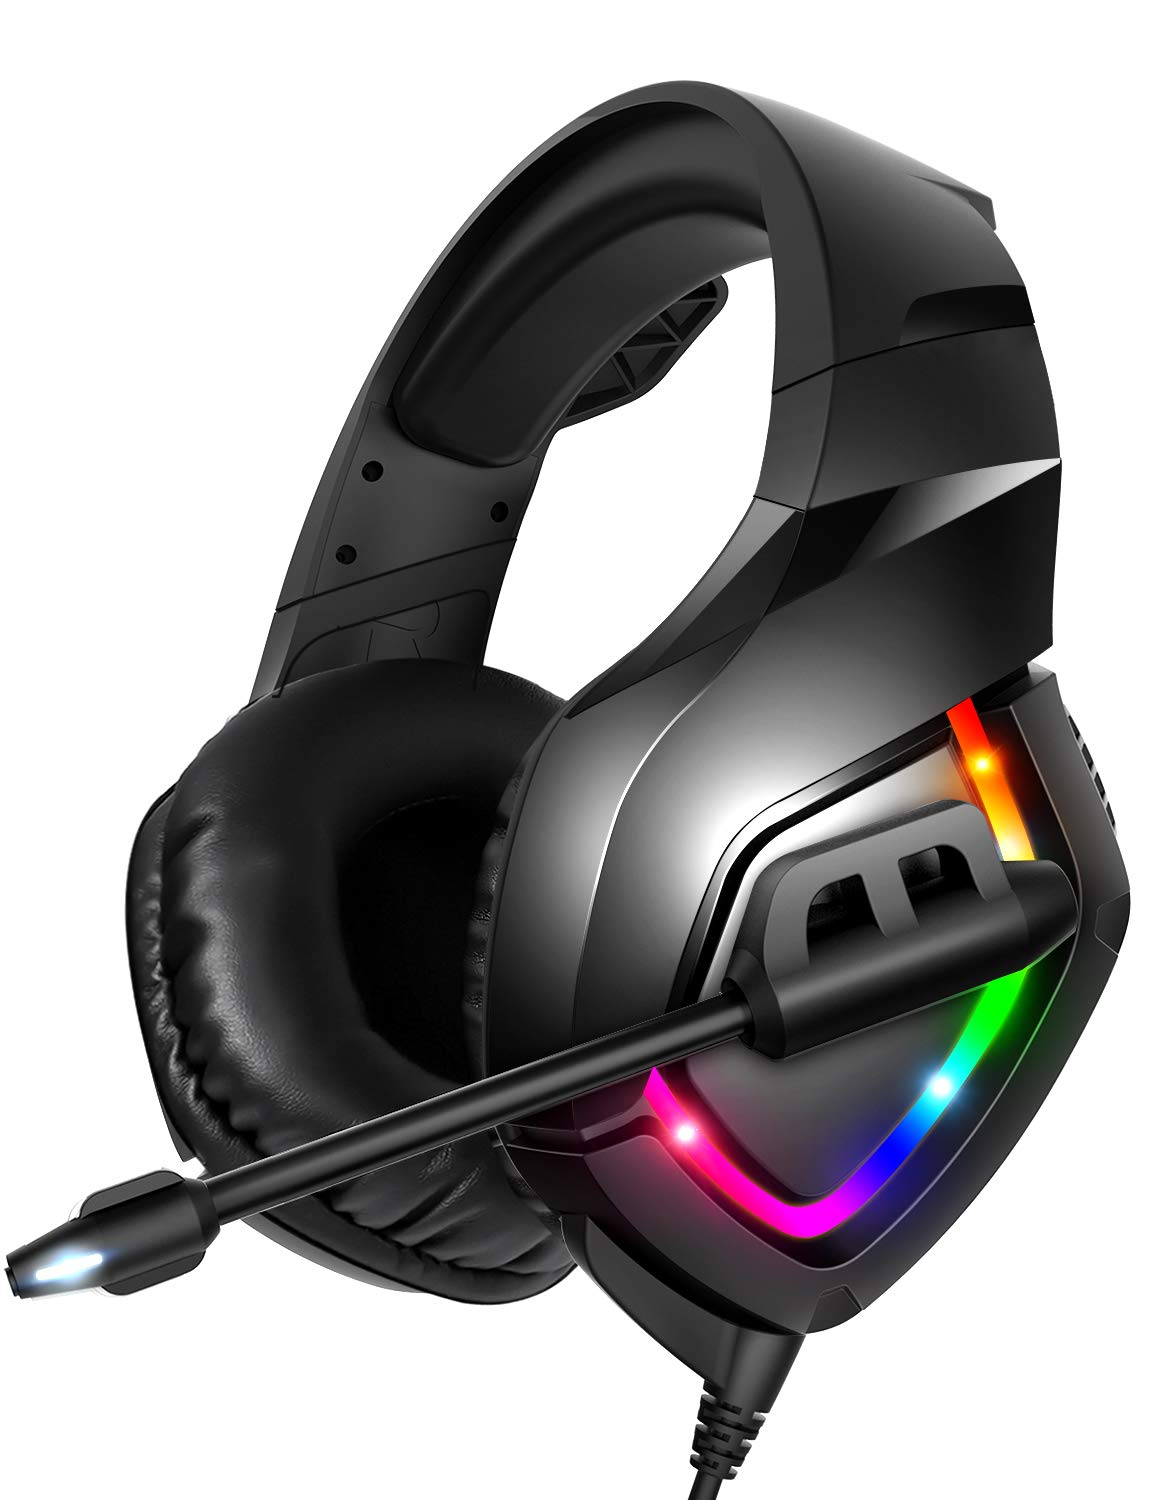 RUNMUS Gaming Headset PS4 Headset with 7.1 Surround Sound, Xbox One Headset with Noise Canceling Mic & RGB Light, Compatible w/ PS4, Xbox One(Adapter Not Included), PC, Laptop, NS